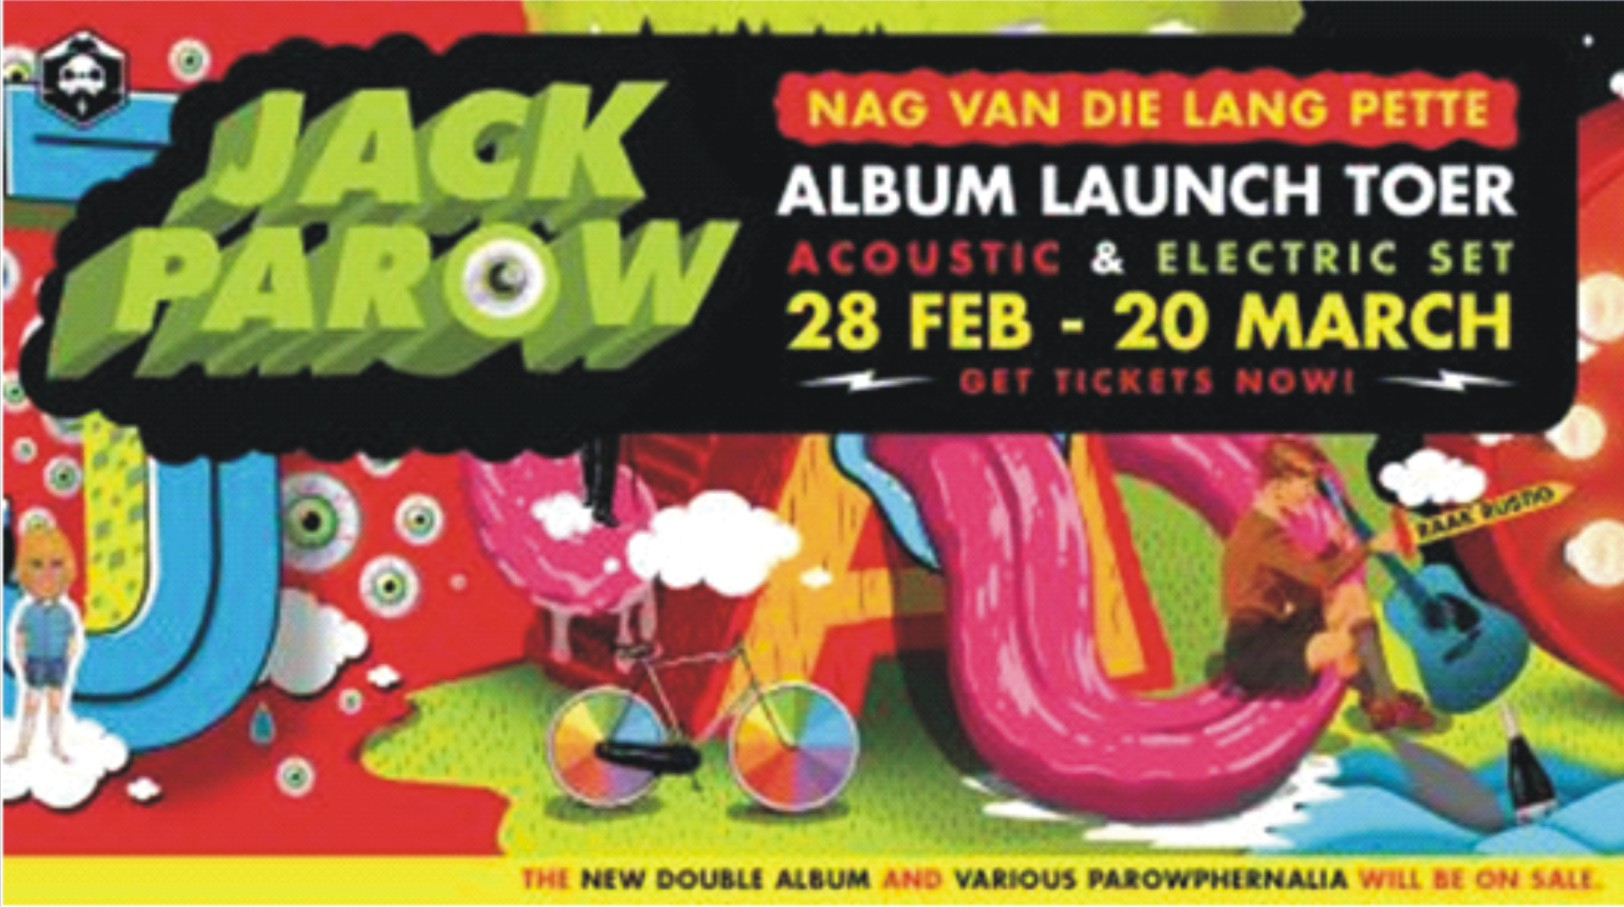 Jack Parow is set to take his album launch tour to his SA music fans